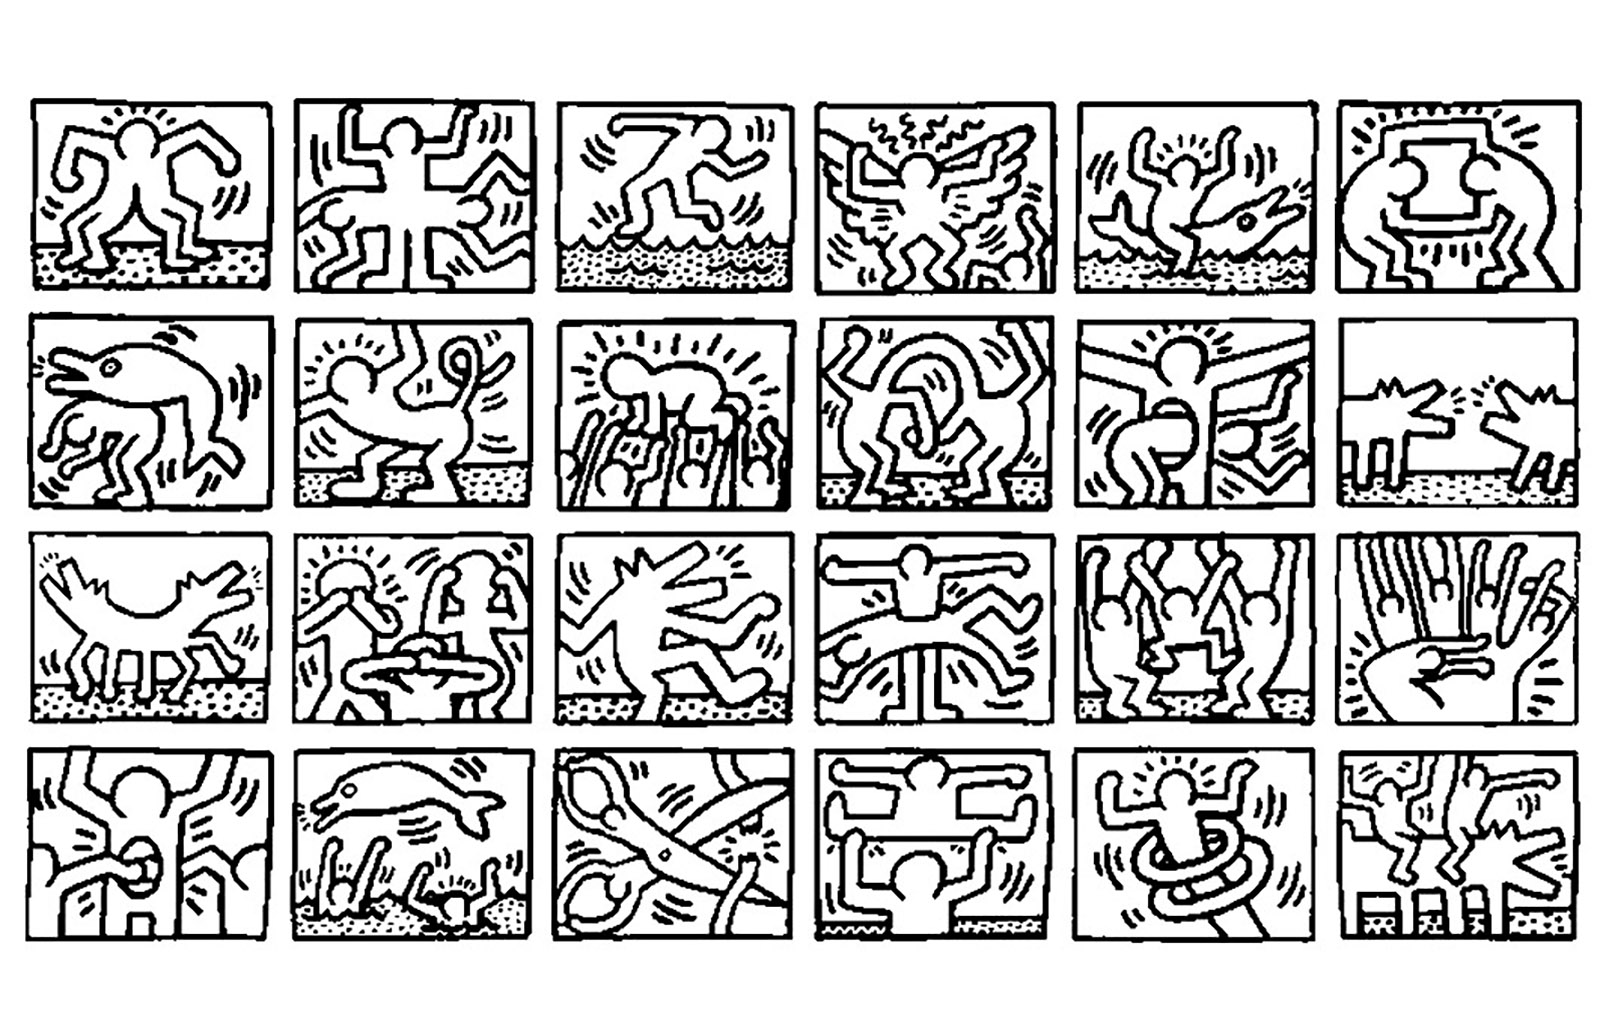 Keith haring 4 pop art coloriages difficiles pour adultes - Coloriage art ...